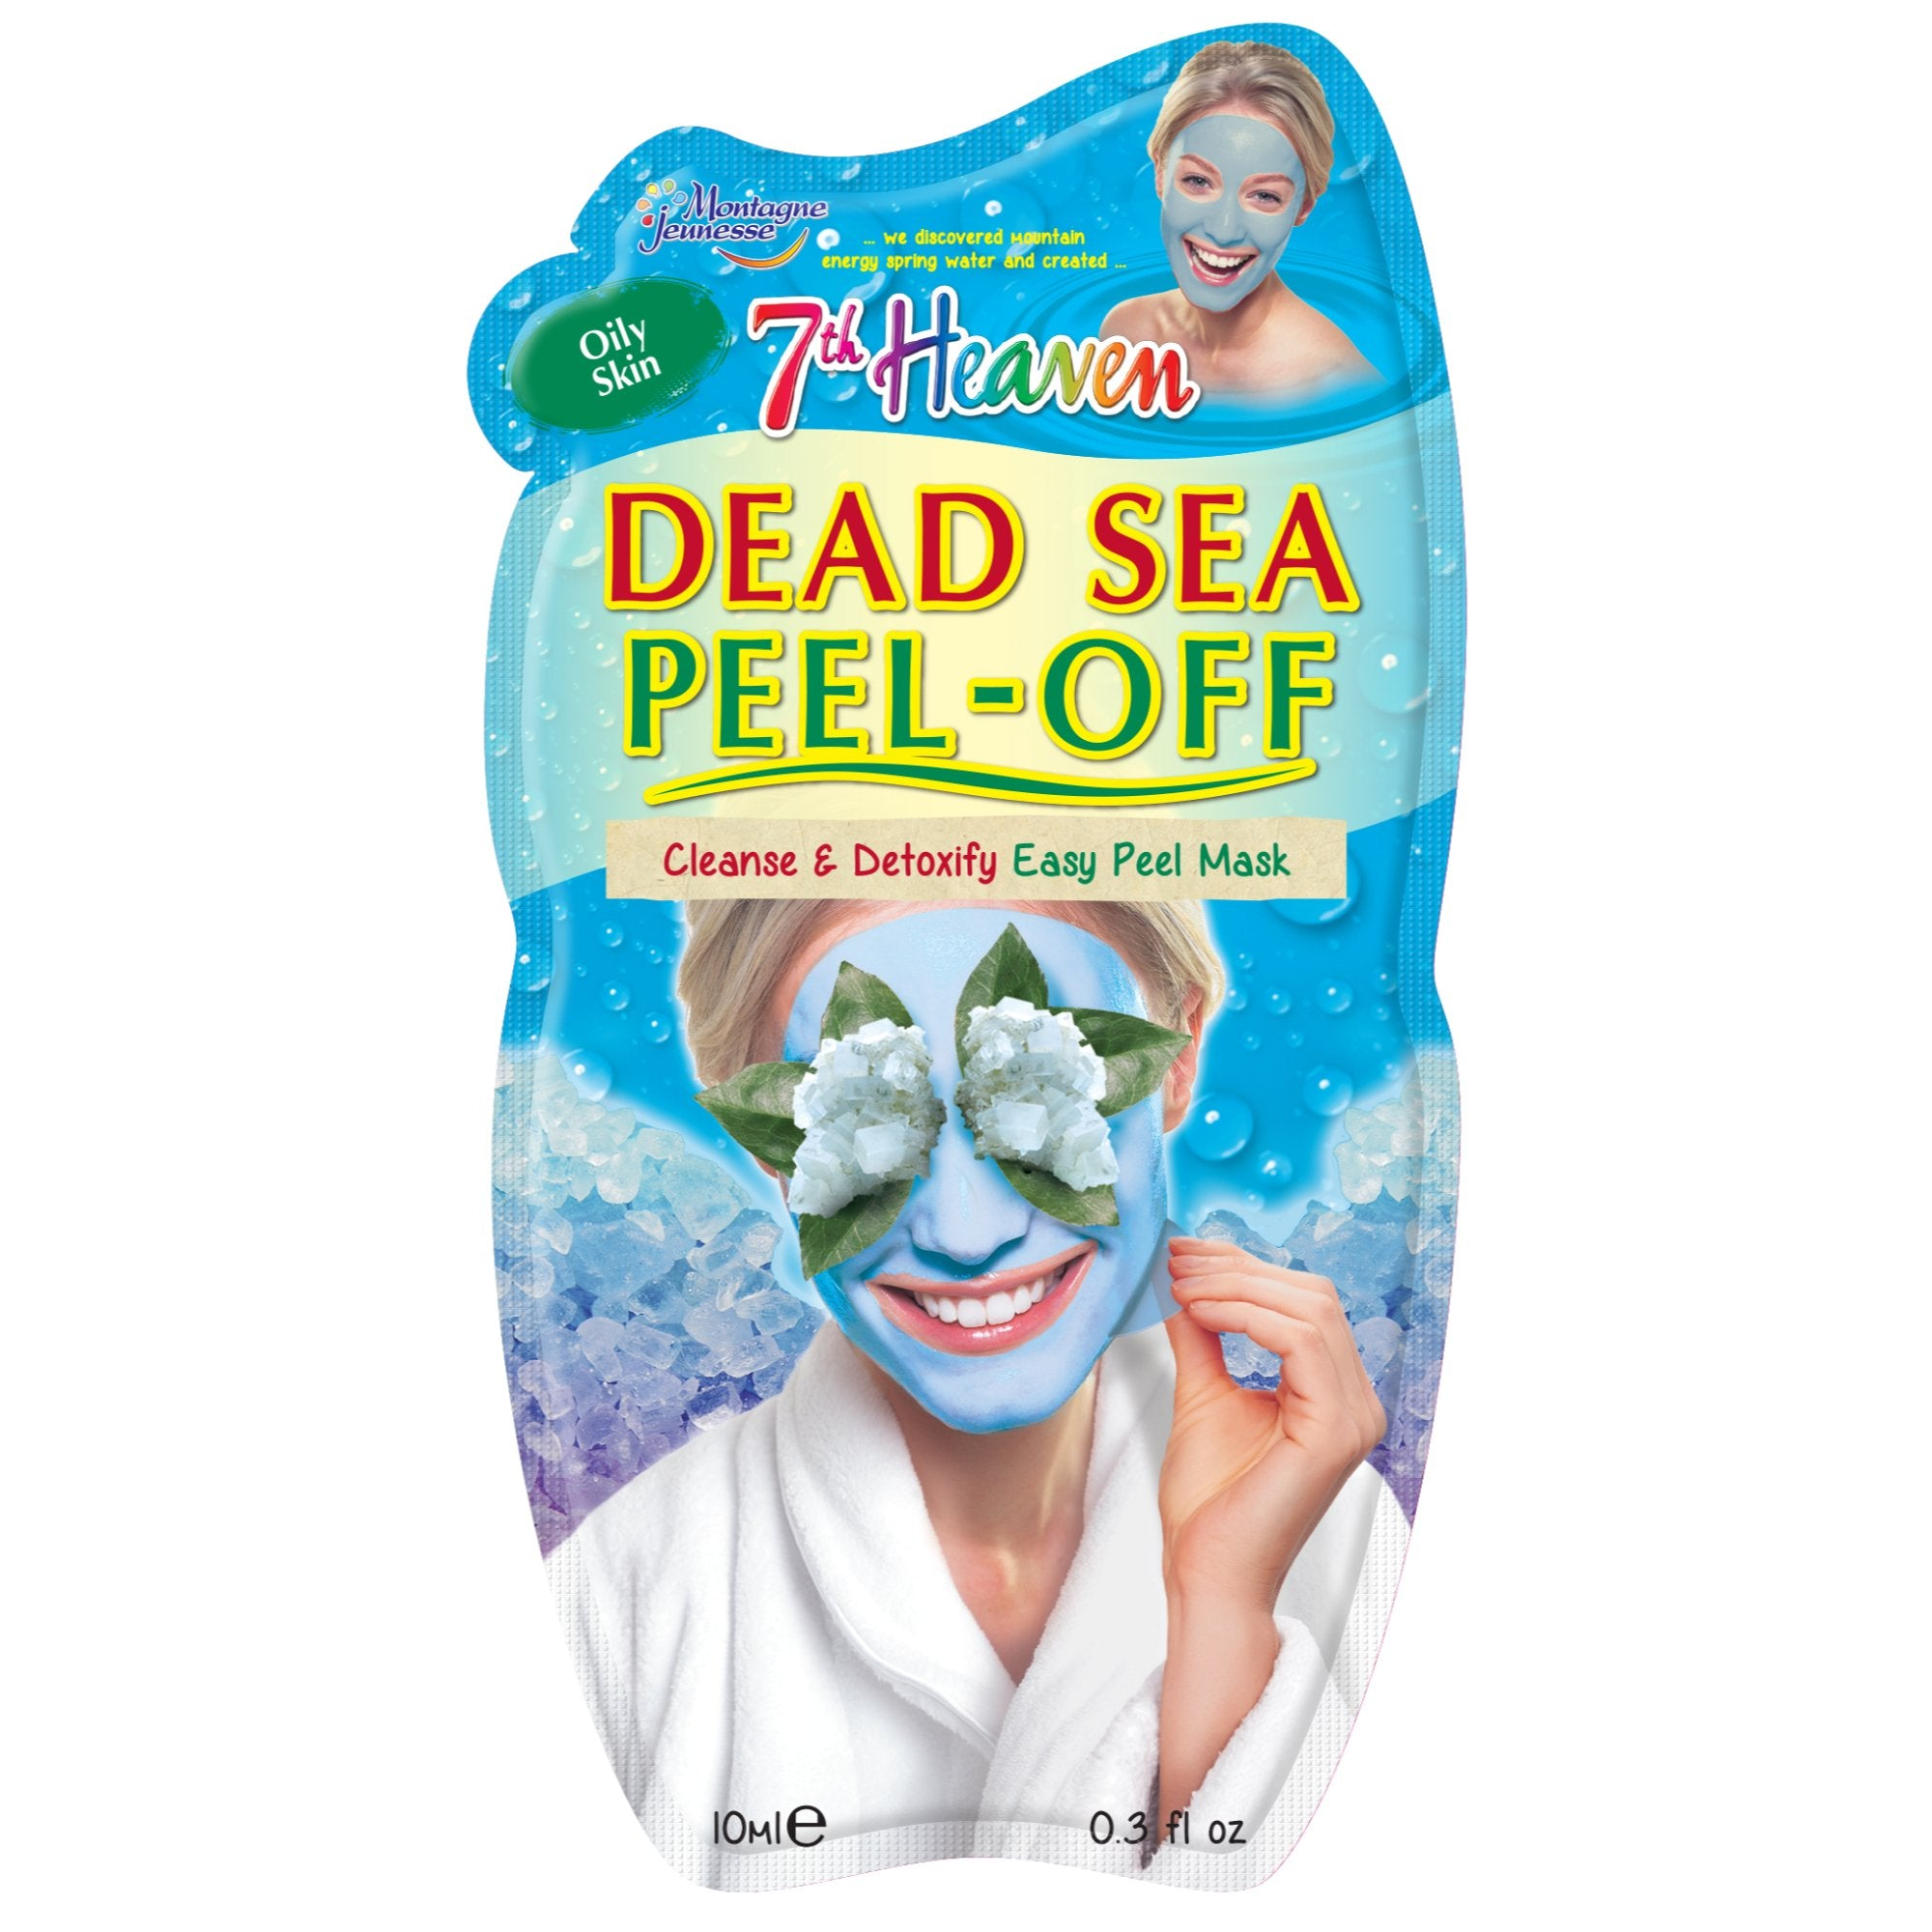 Dead Sea Peel-Off Mask